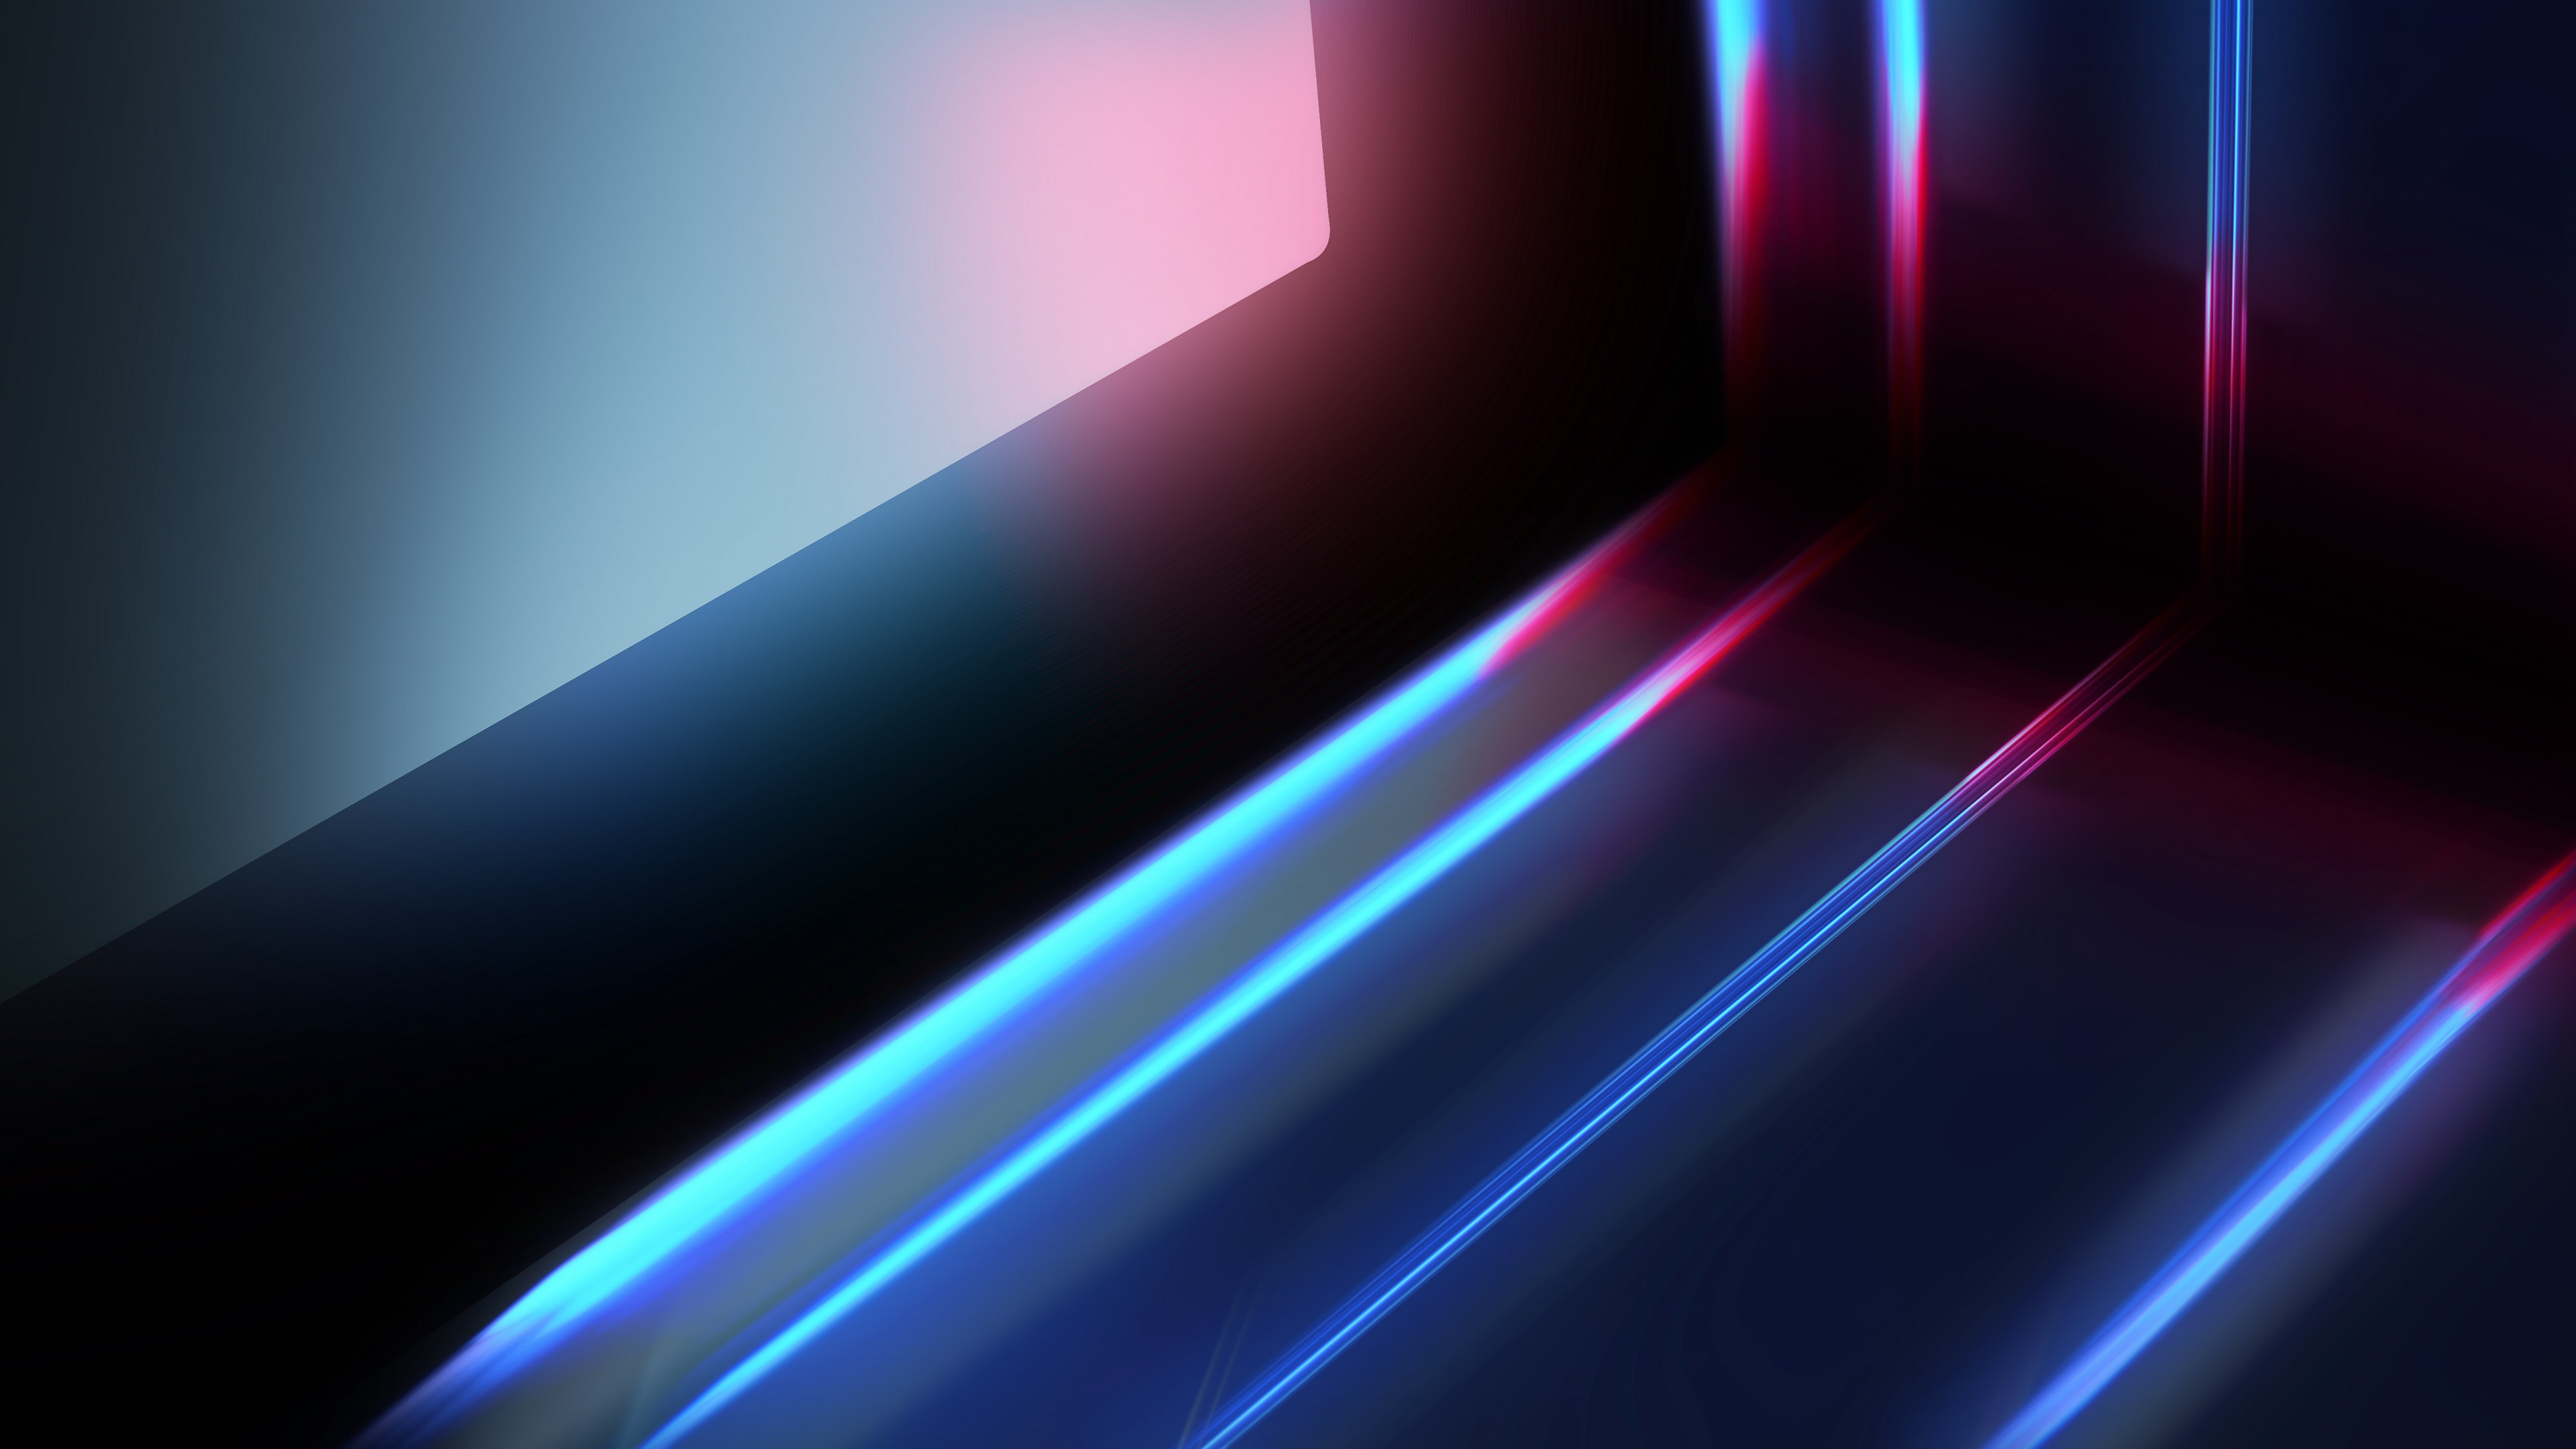 Abstract blue red lights wallpaper 3840x2160